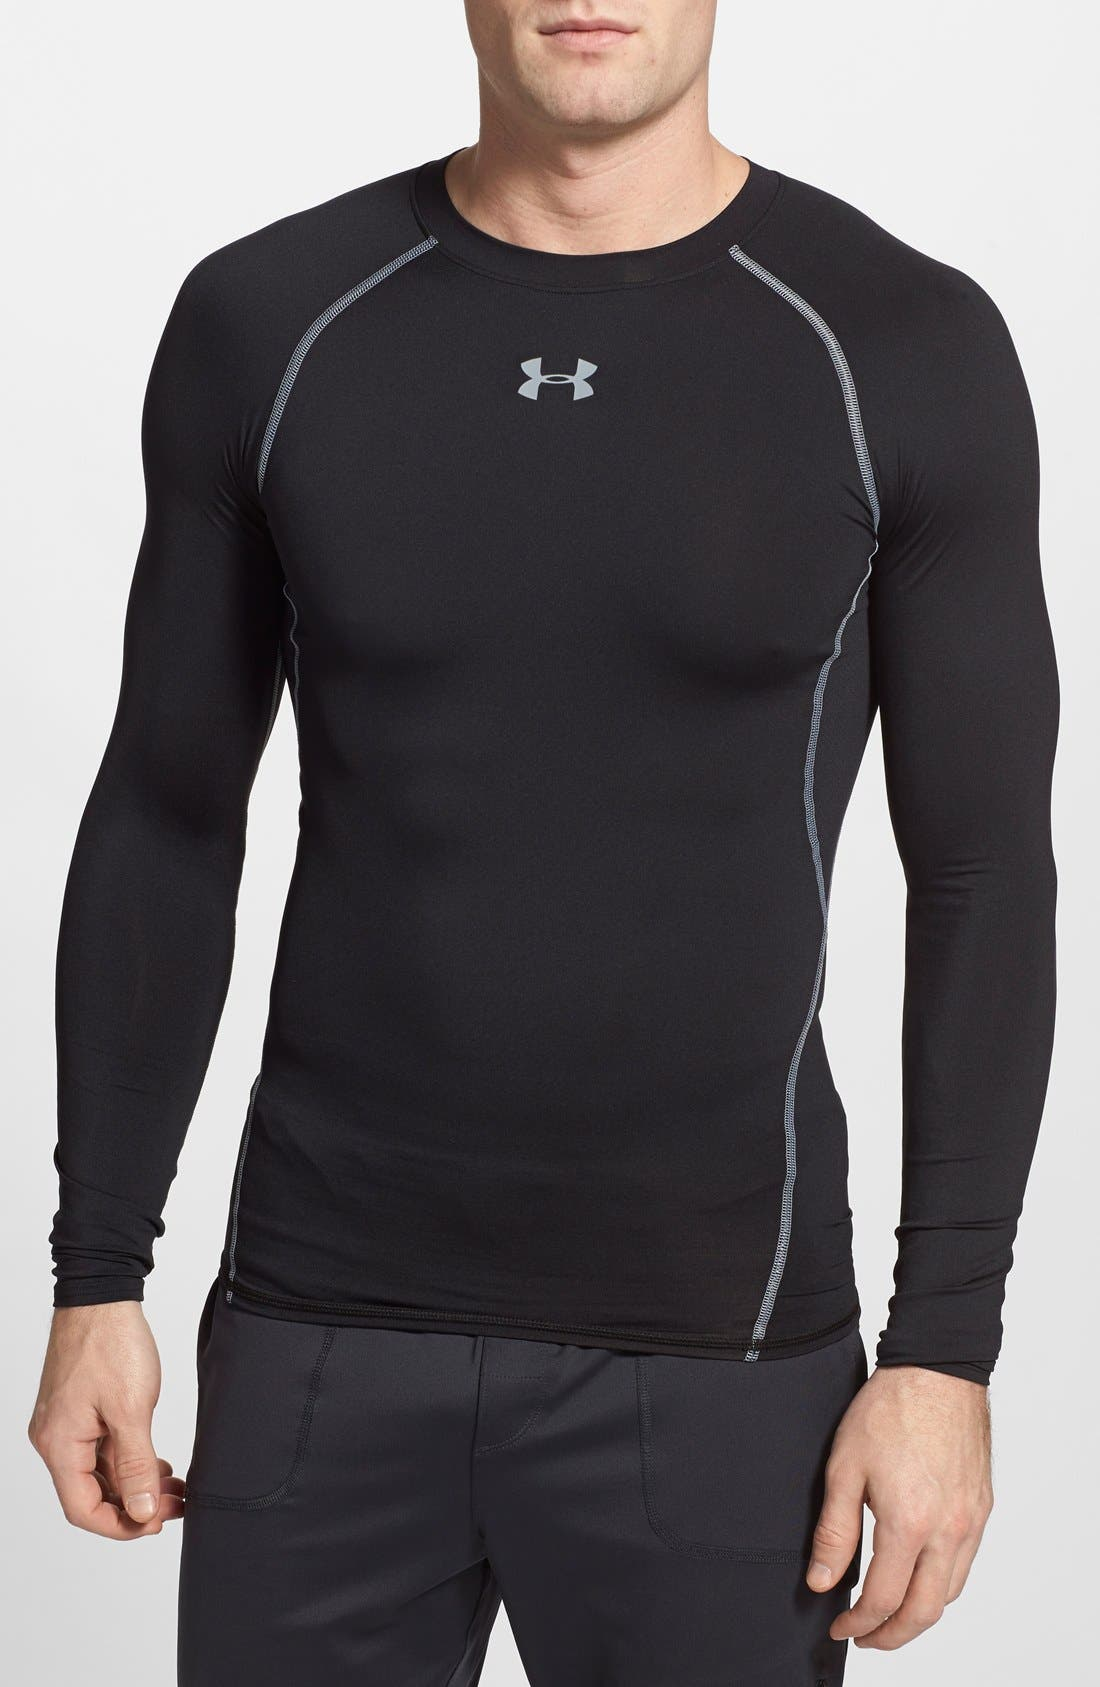 HeatGear<sup>®</sup> Compression Fit Long Sleeve T-Shirt,                             Main thumbnail 1, color,                             BLACK/ STEEL